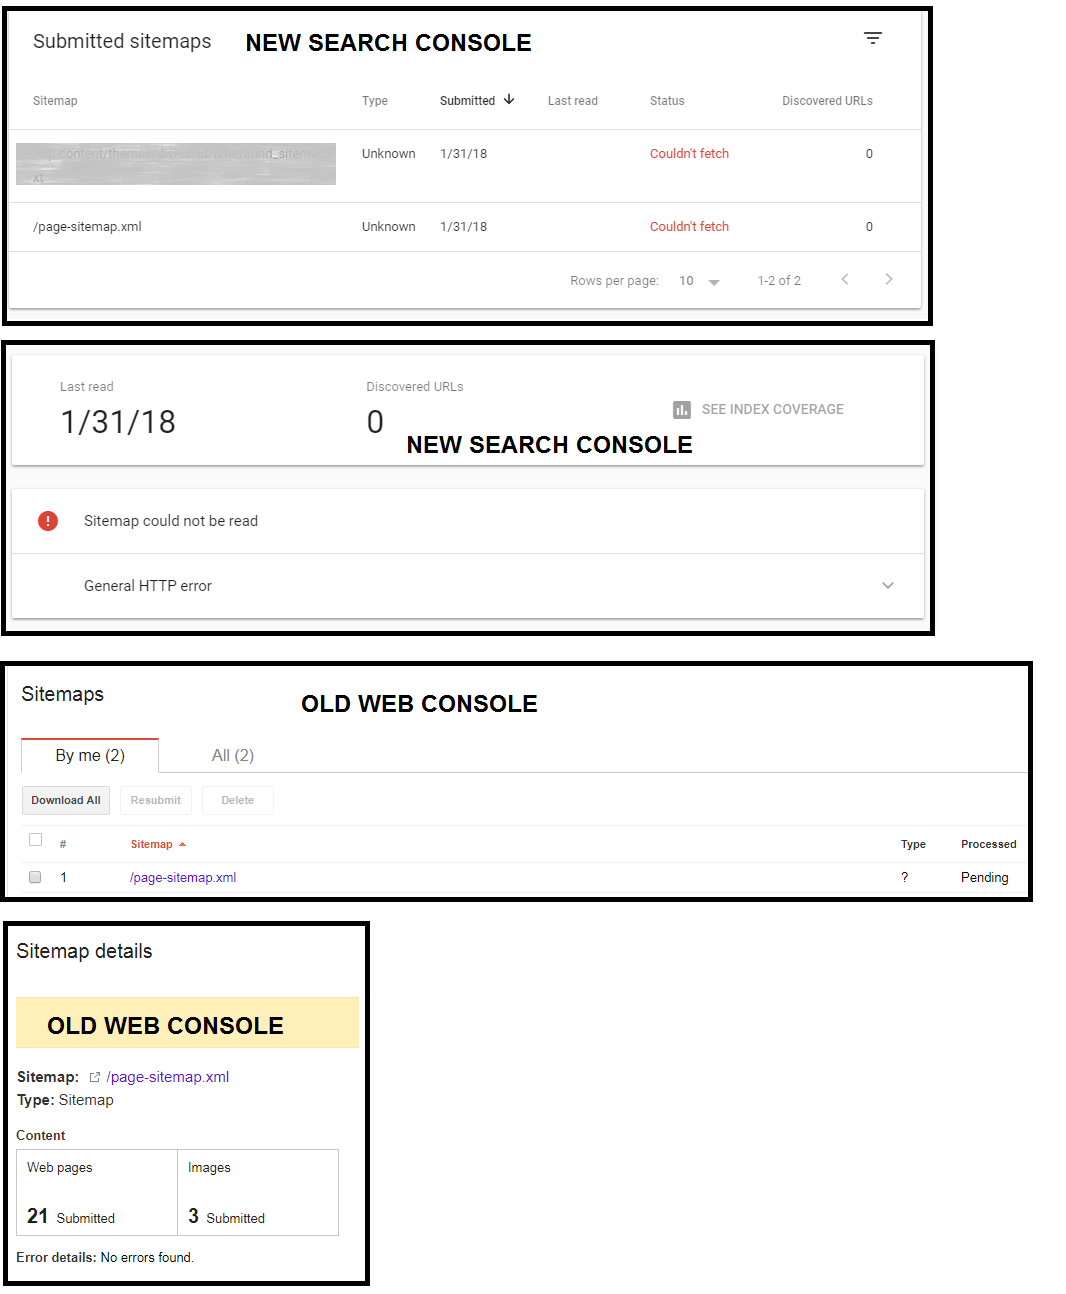 submitting sitemaps new google search console vs old web console